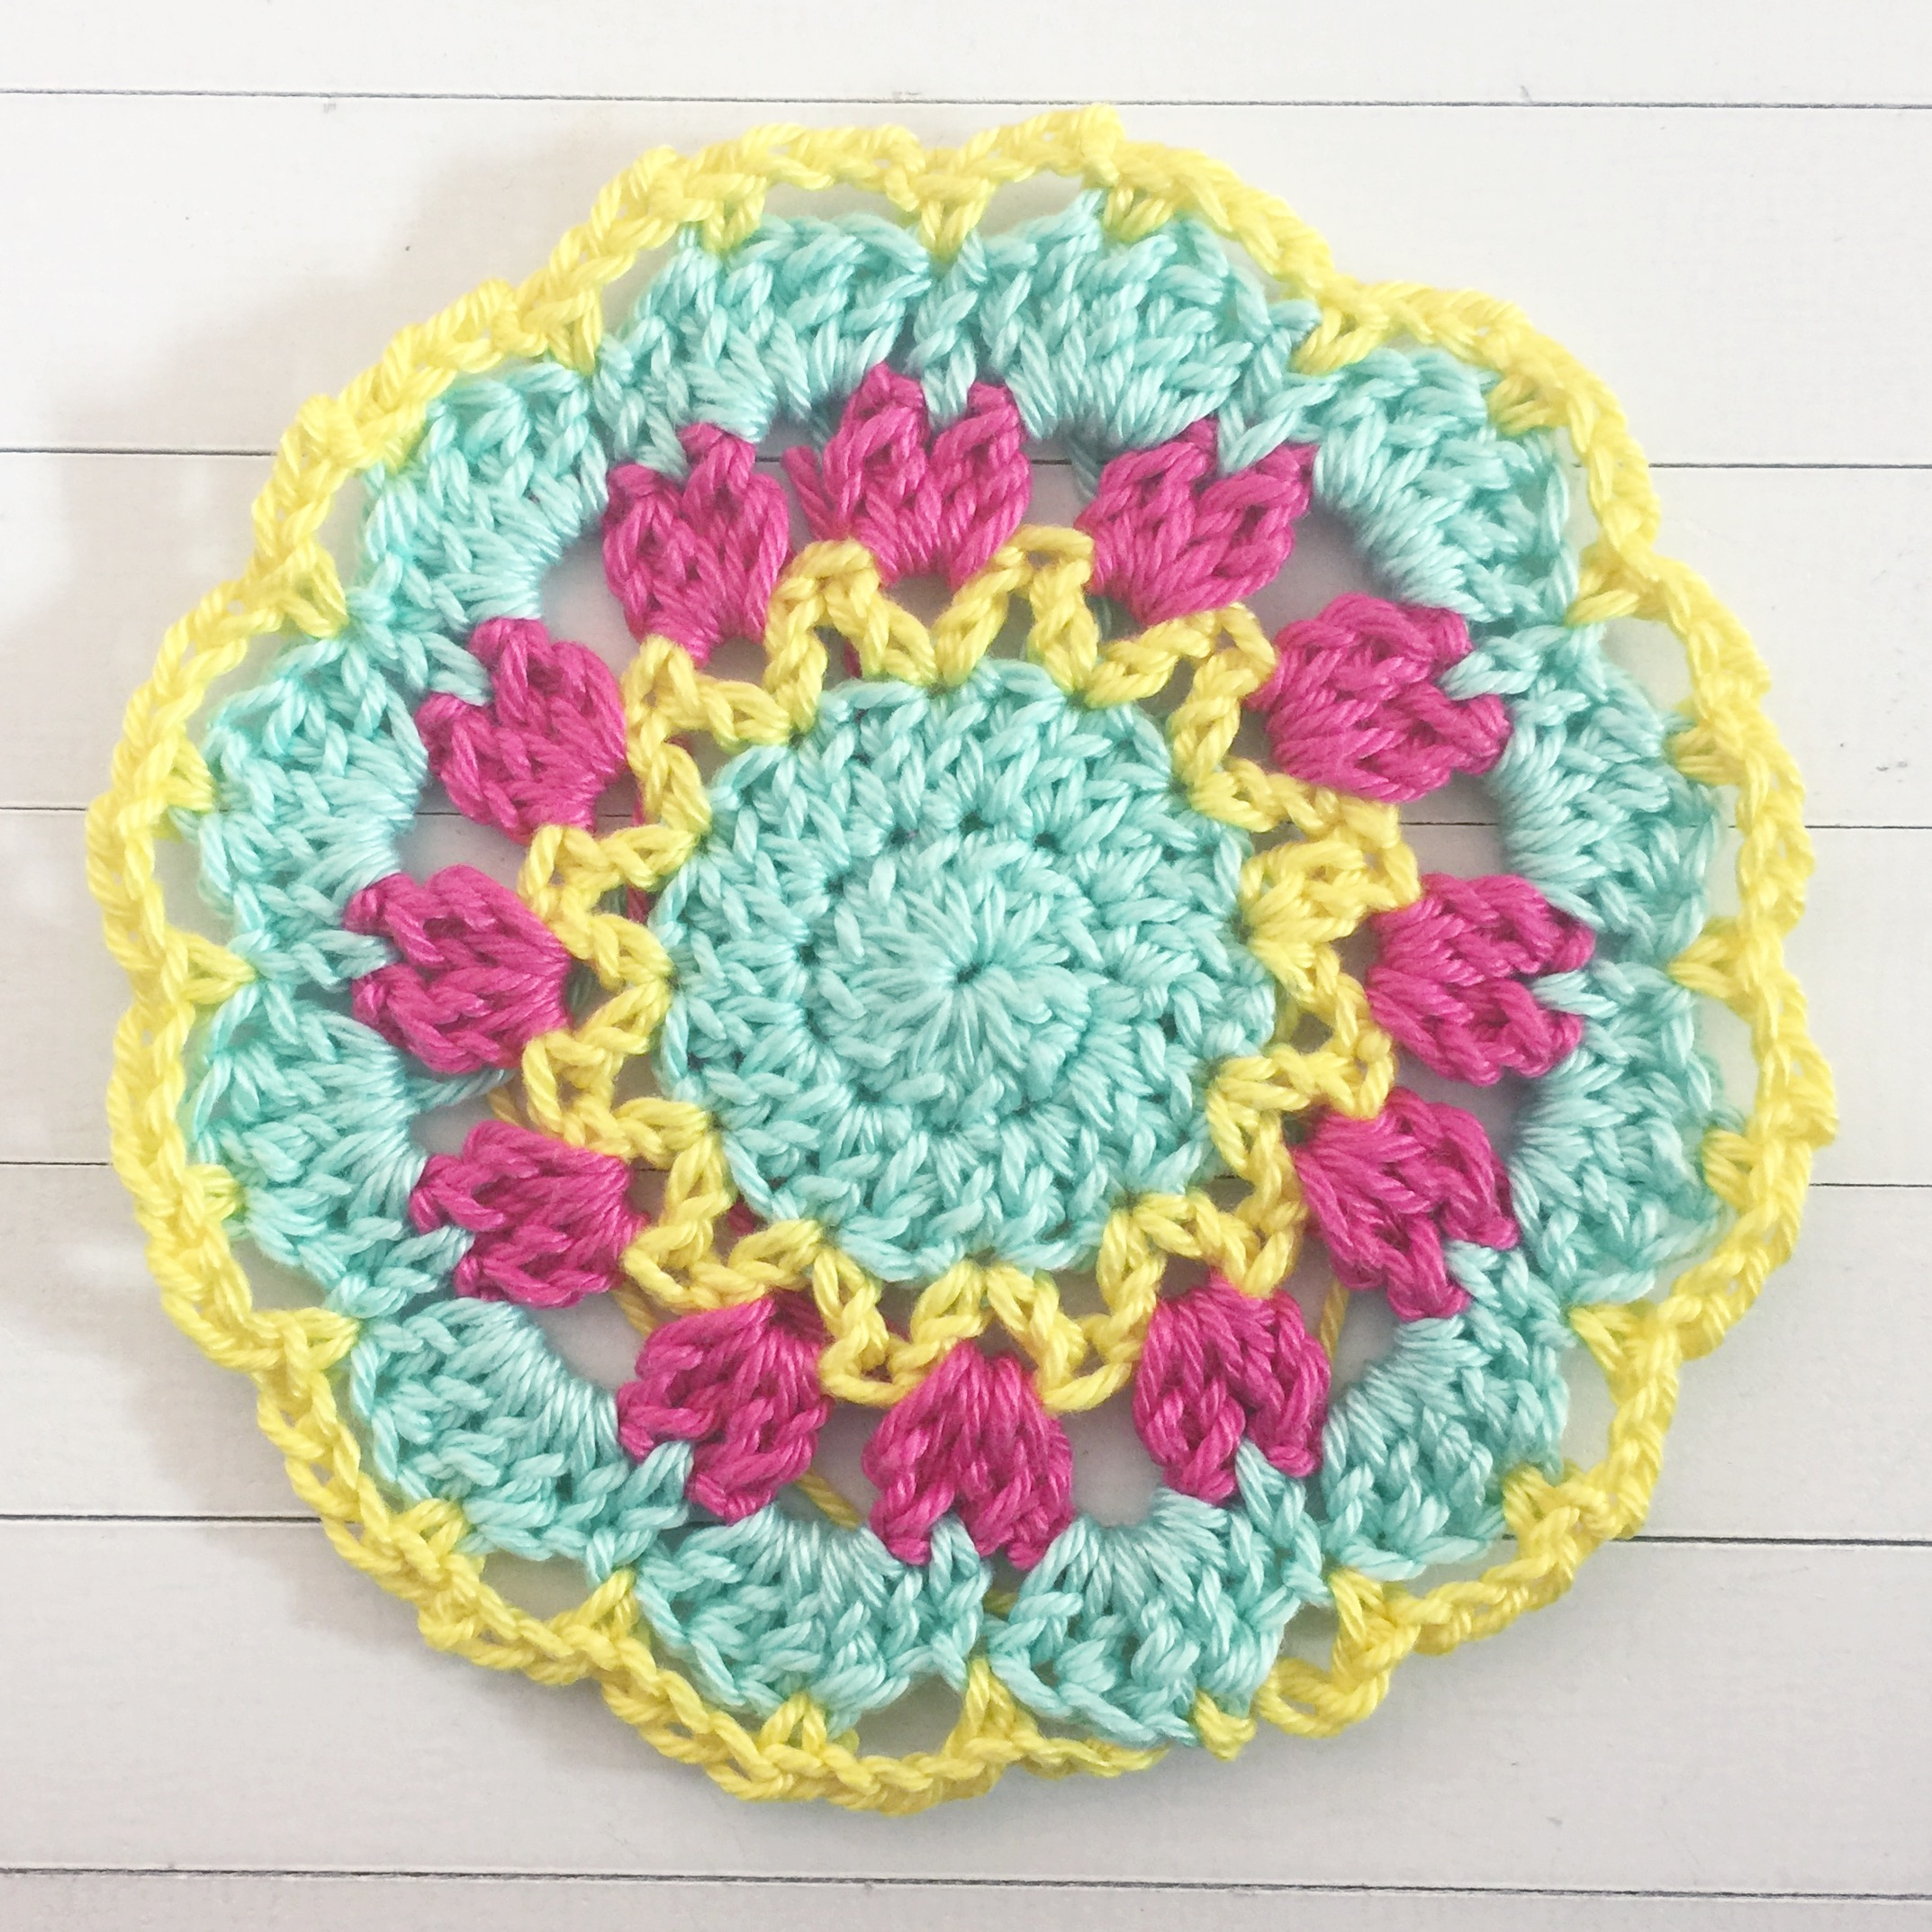 Join next colour to the top of any HDC with an SC (single crochet). CH3, sc into the Tr from the previous round. CH3, sc into the next HDC. Repeat this around, SS to join.